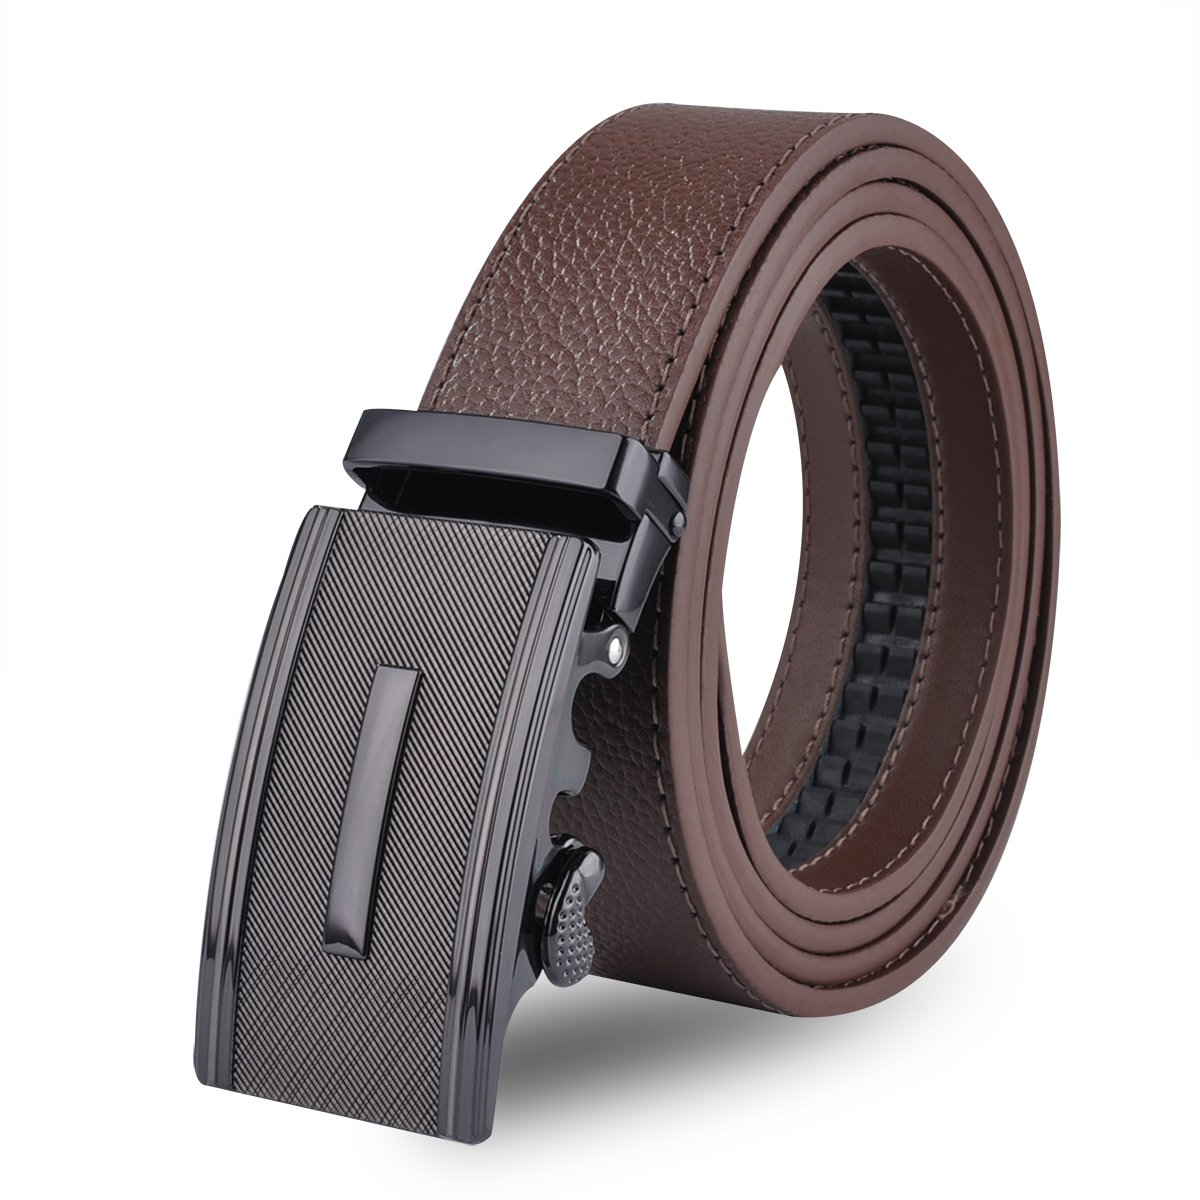 Men Designer Belt Sliding Buckle Ratchet Belt 35mm Wide 1 3/8'' Great Gift Idea